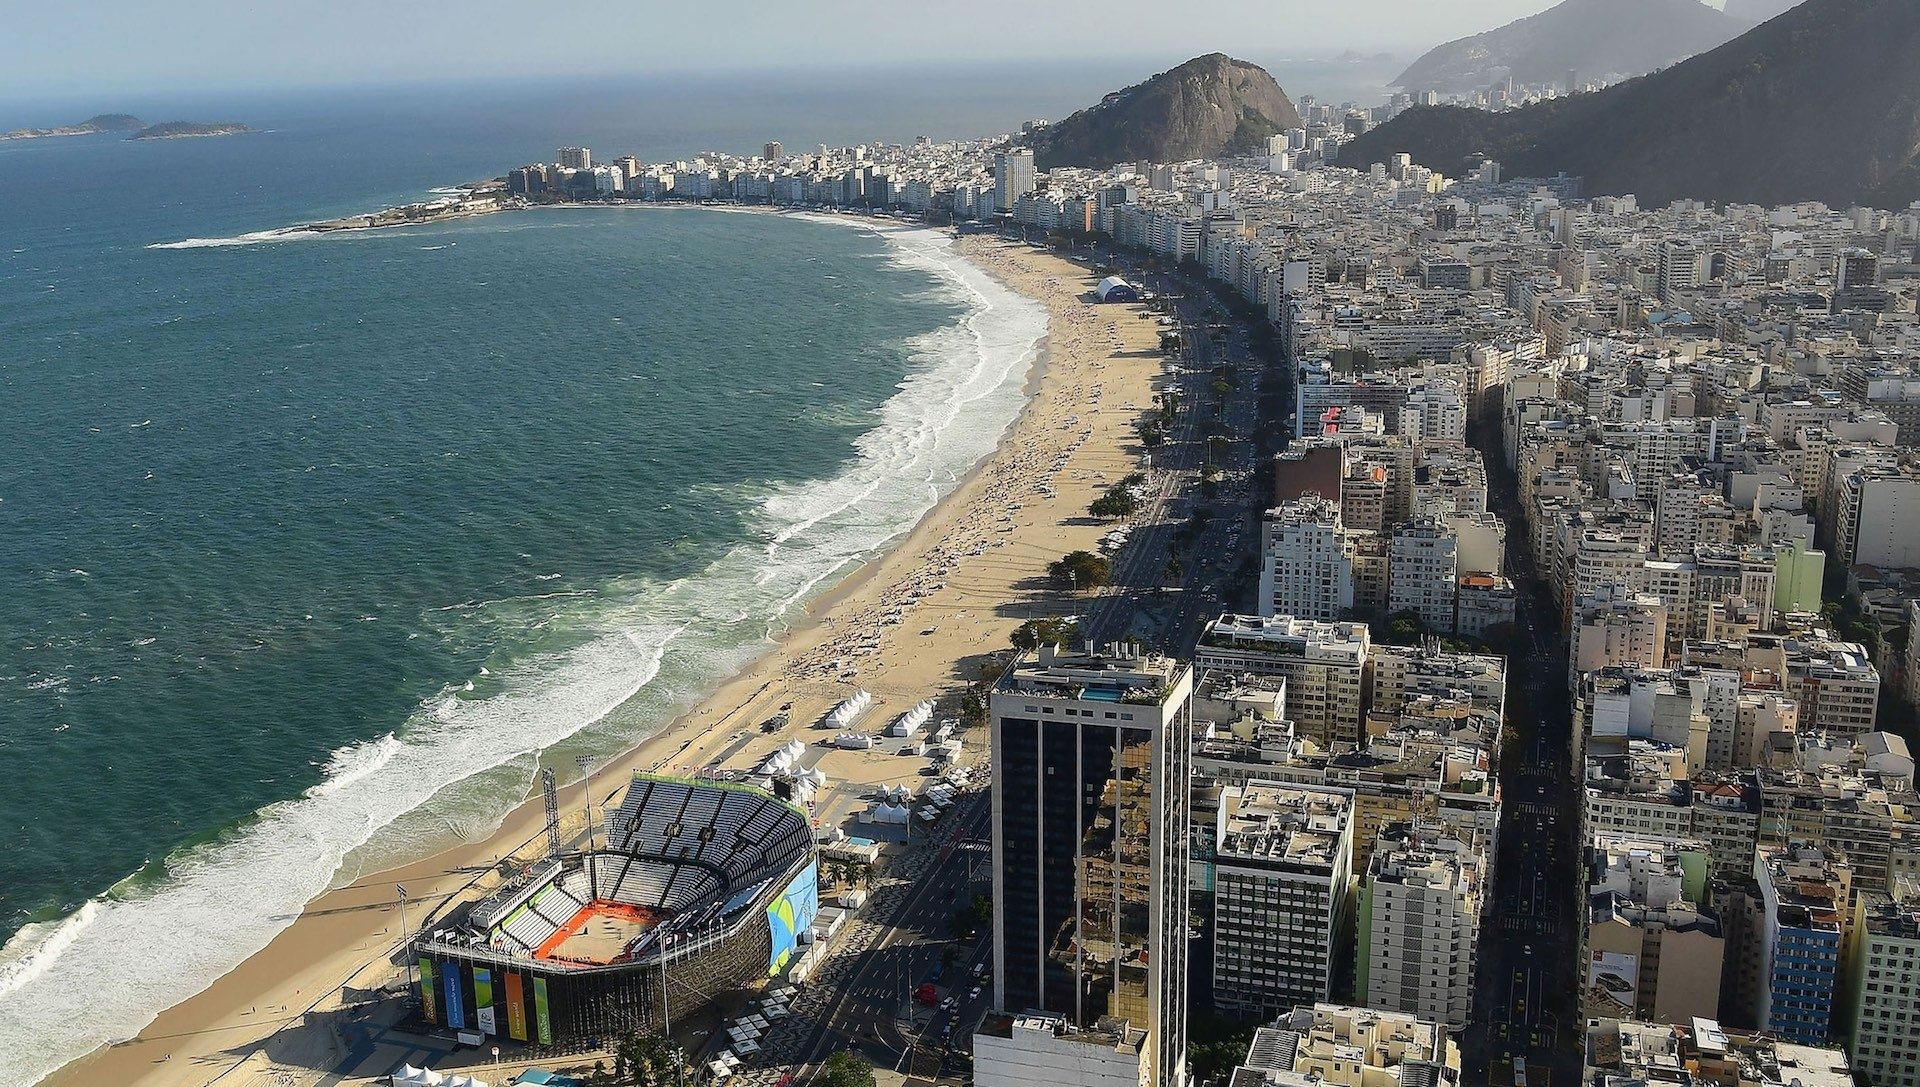 The Copacabana – setting for the Olympics 2016.  Photocredit: Getty Images (taken from www.olympic.org)